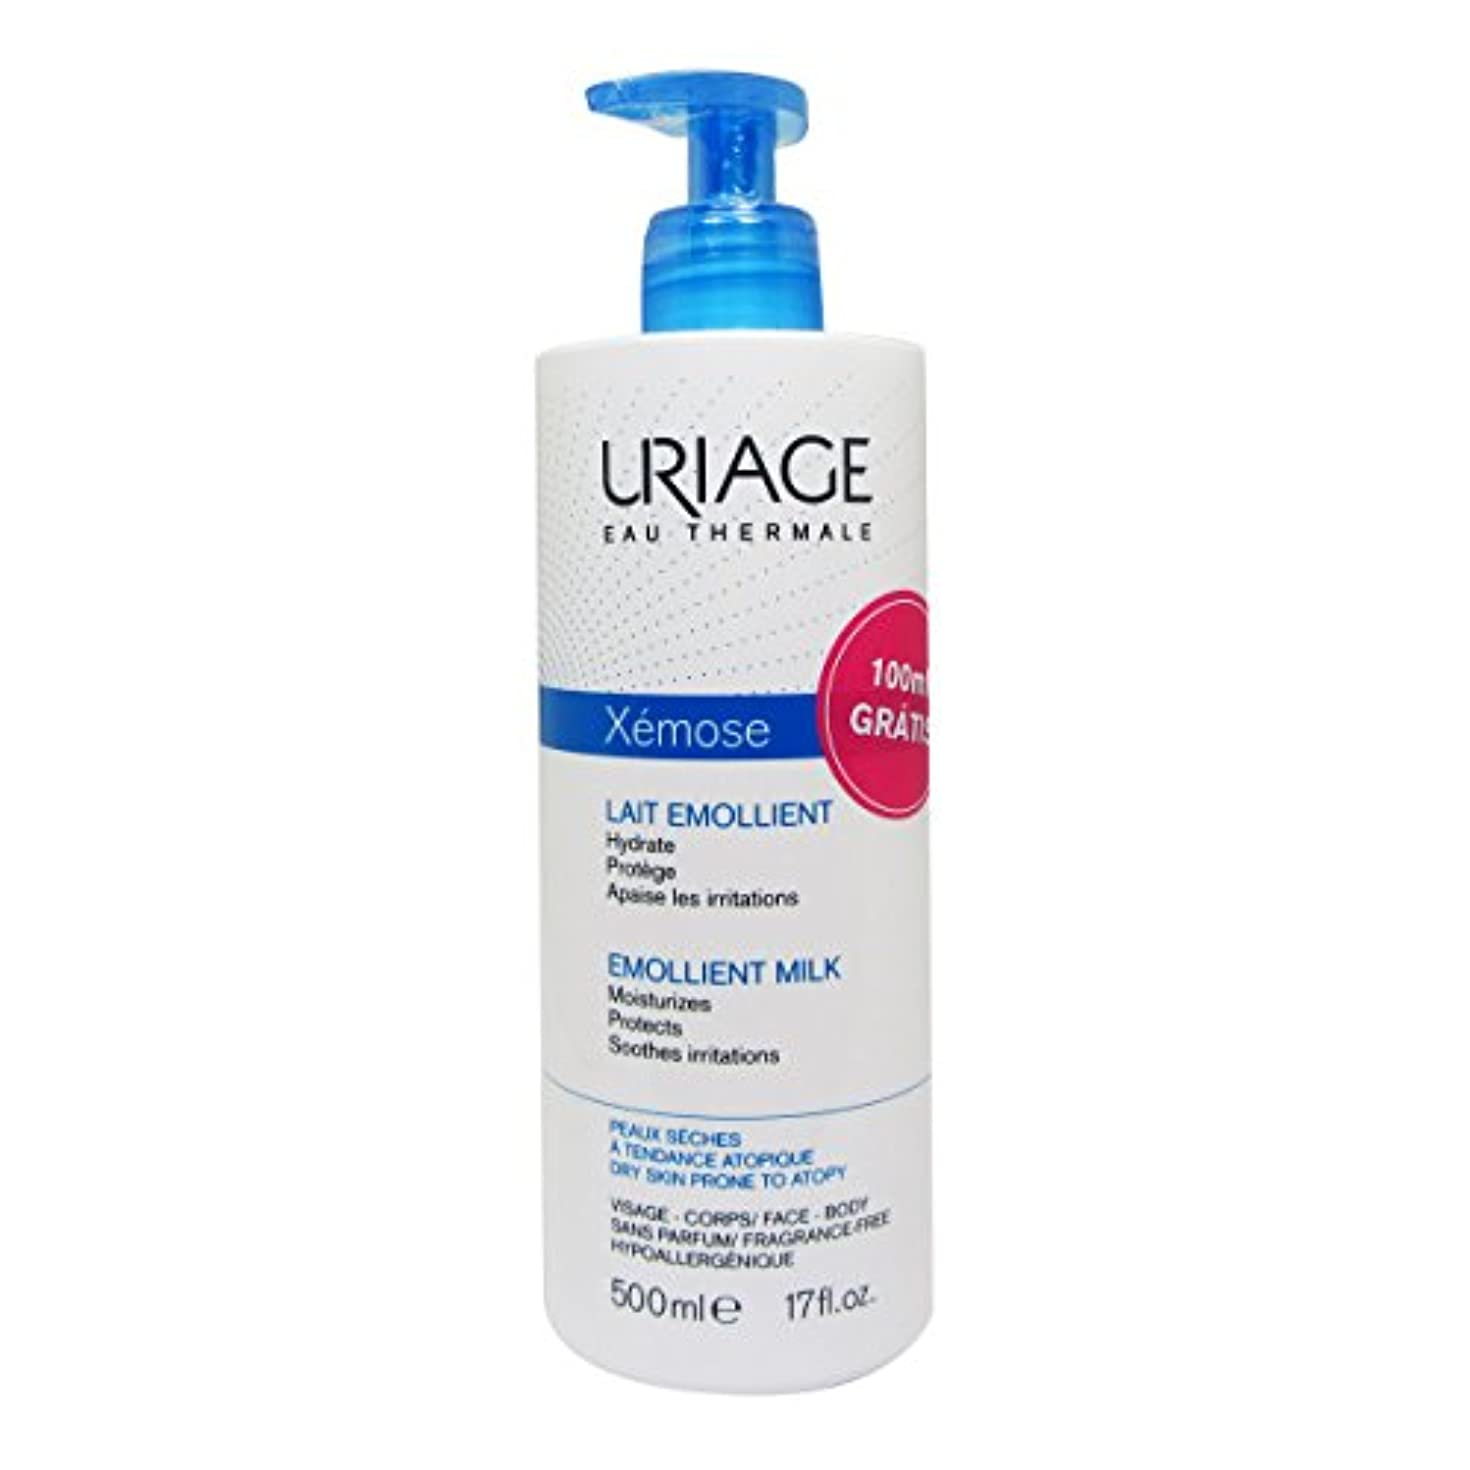 Uriage Xemose Emolliente Milk 500ml [並行輸入品]